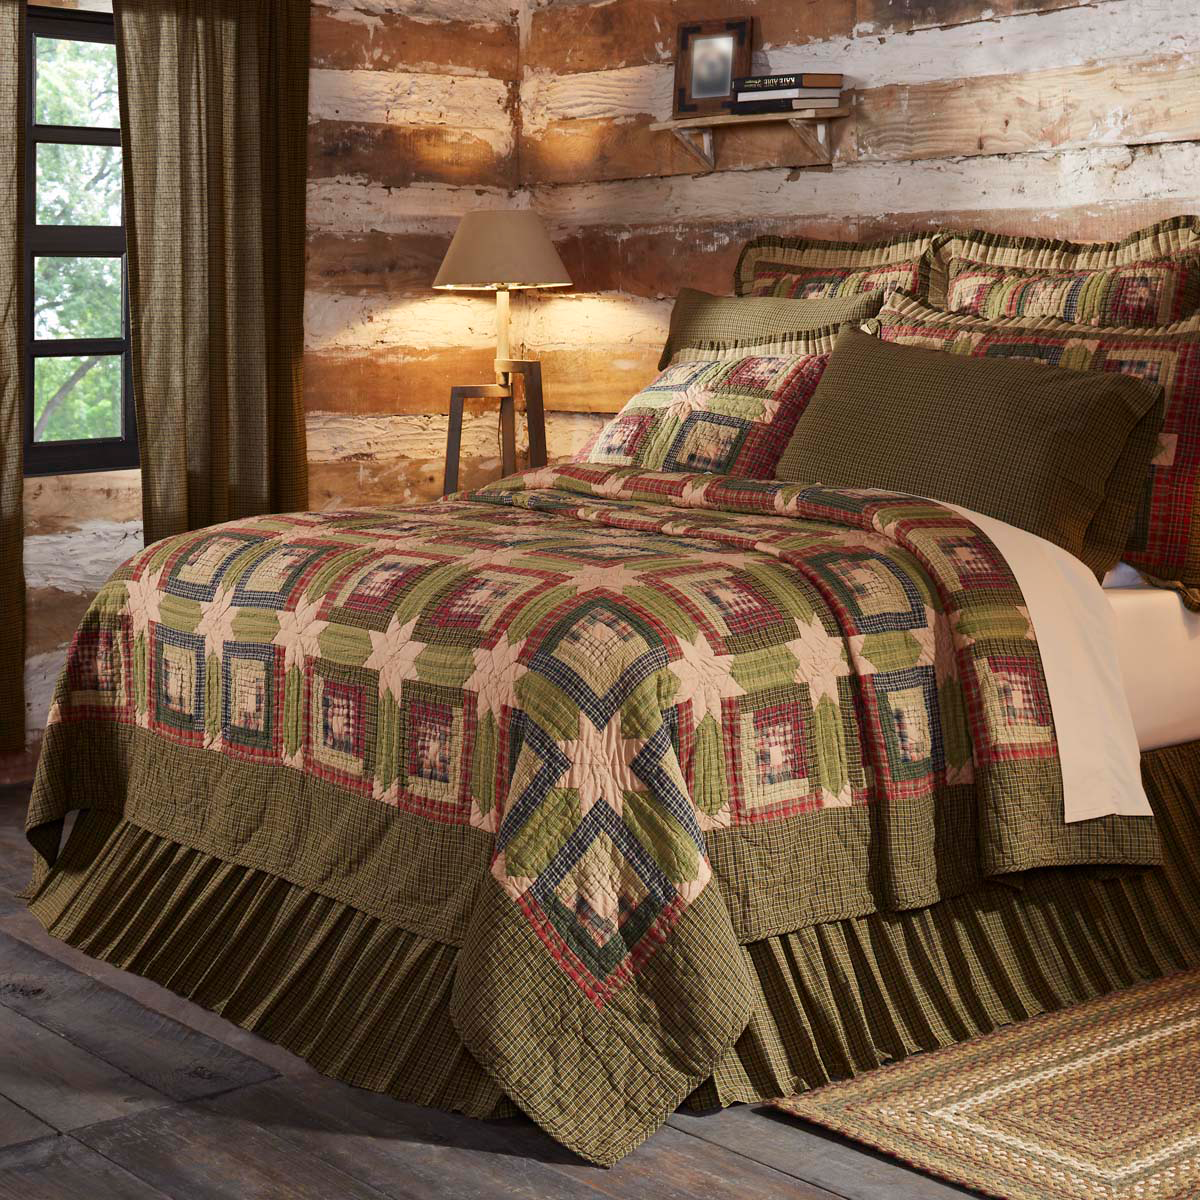 watermark mom crazy cabin wonky quilts quilt log cabins